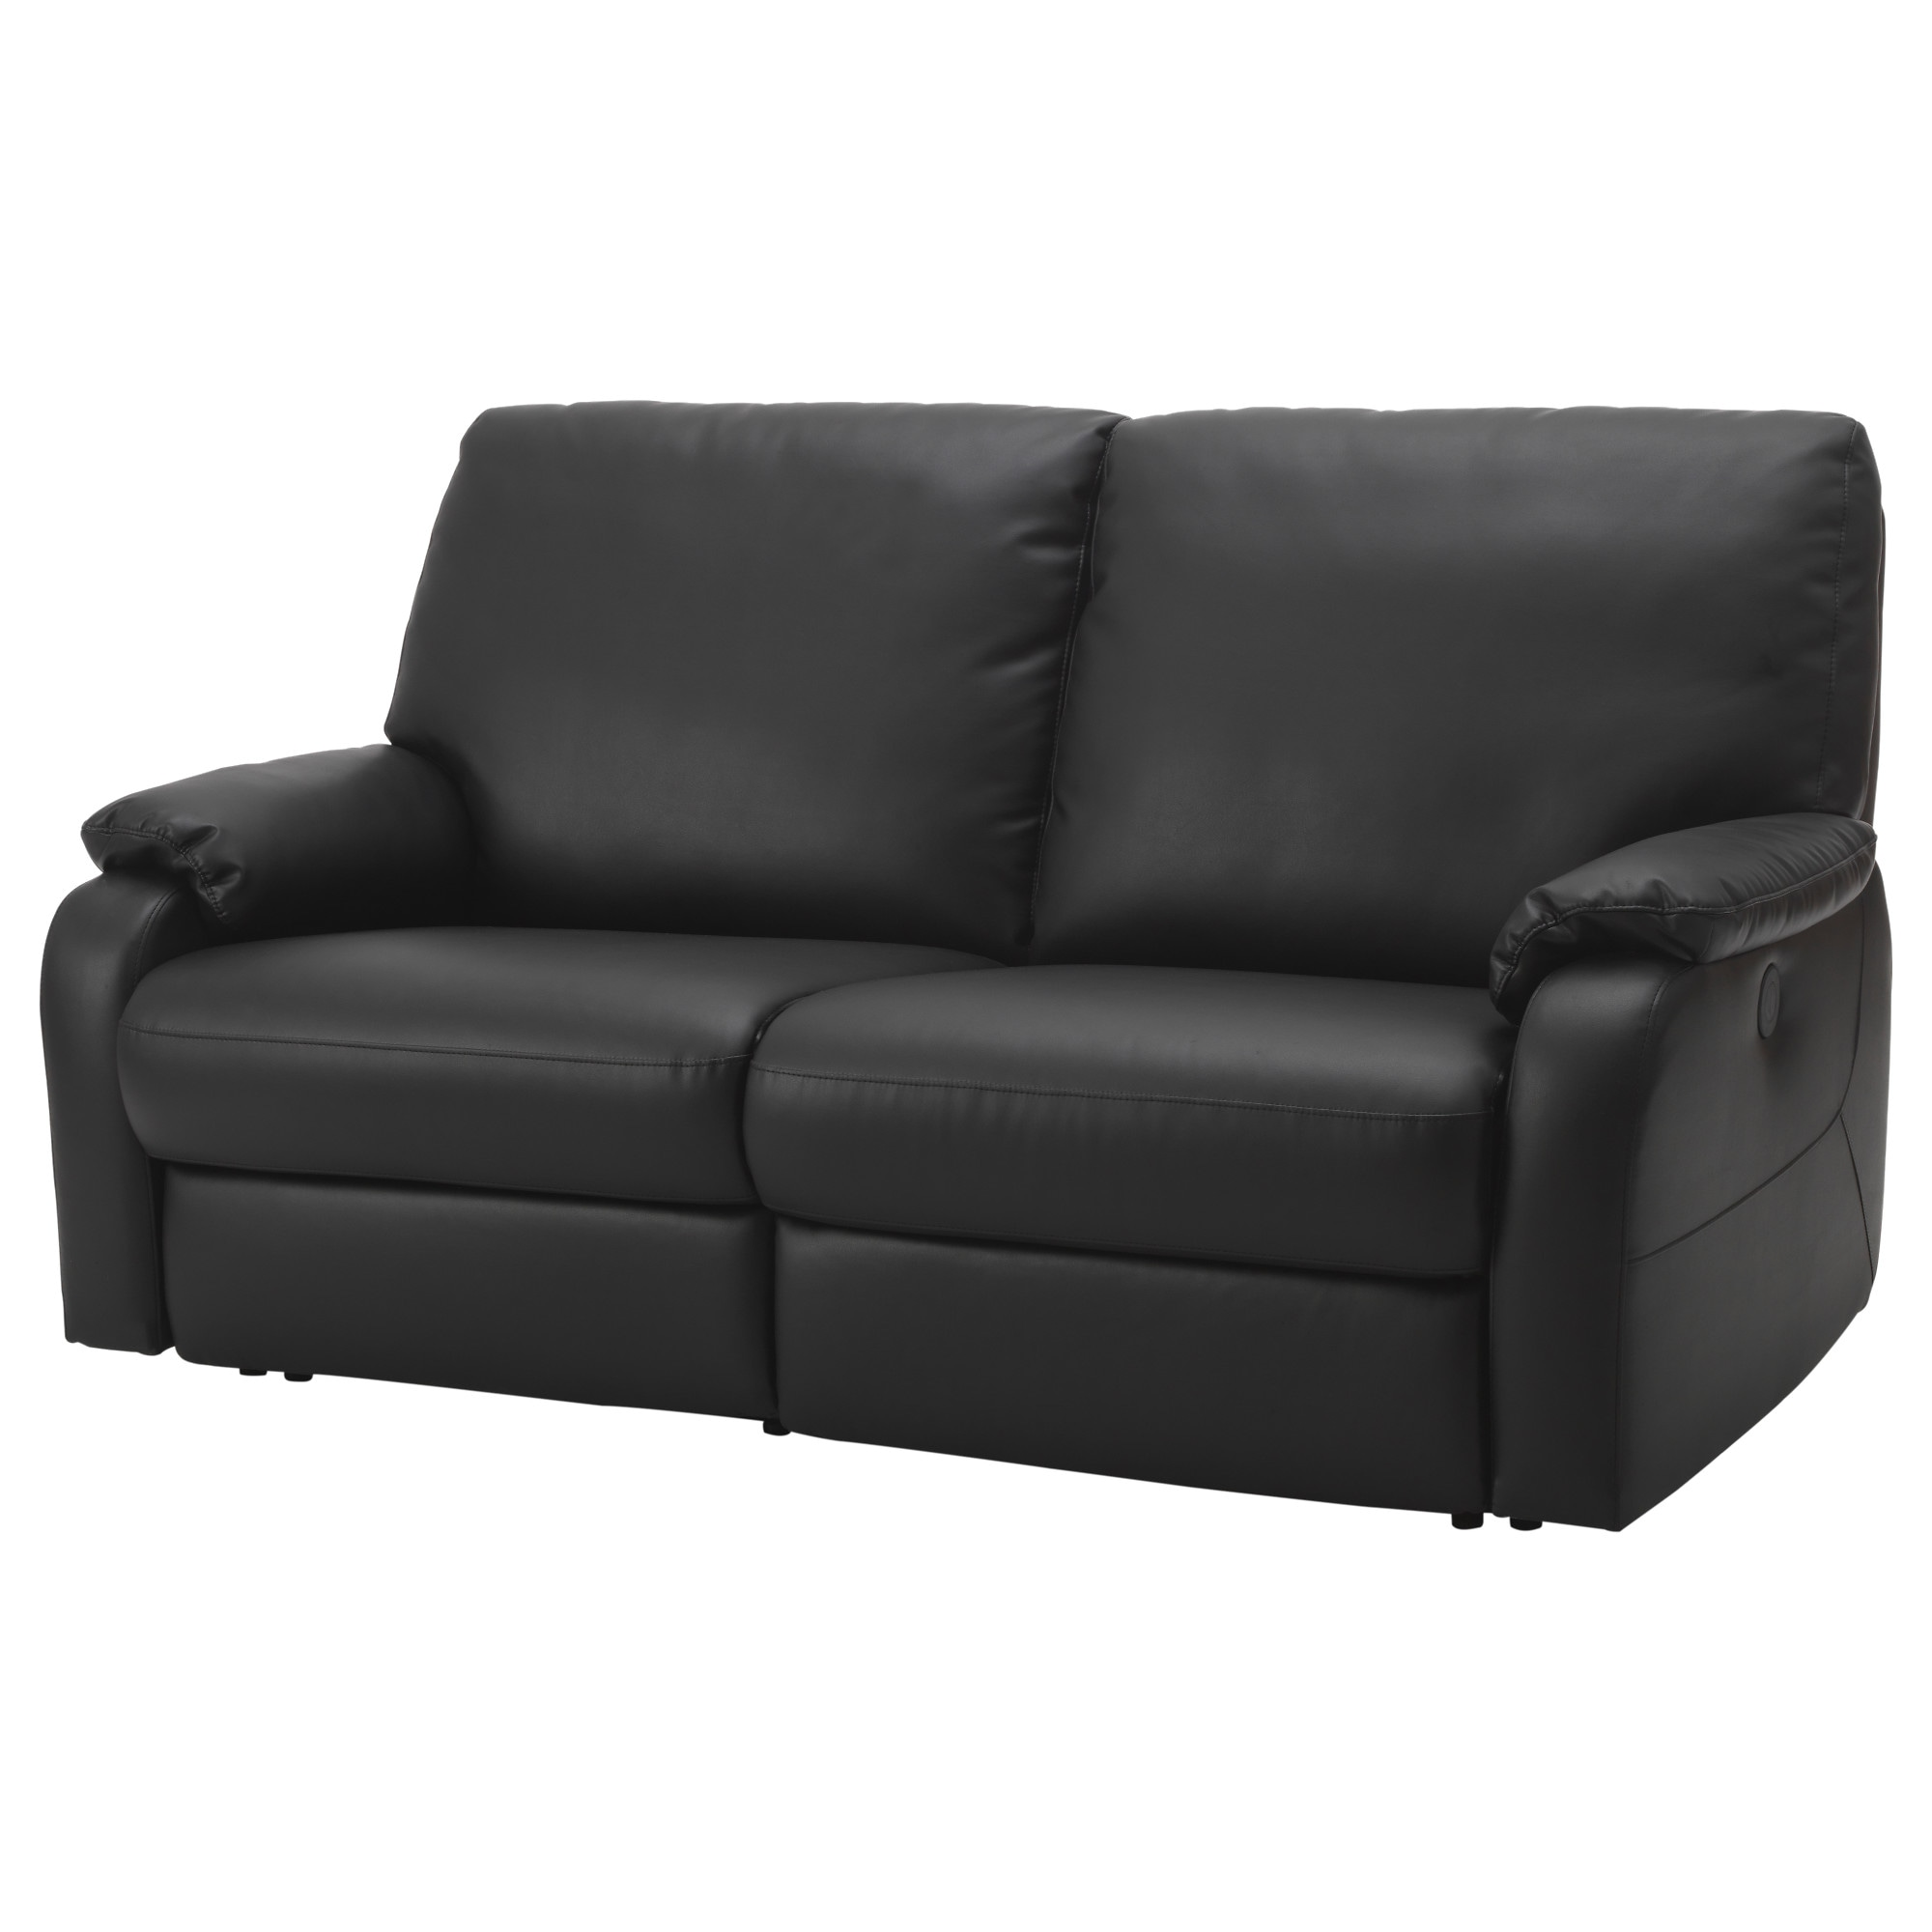 TOMB CK sofa with adjustable seat back  Kimstad black Width  72 7 8. Leather   Faux Leather Couches  Chairs   Ottomans   IKEA